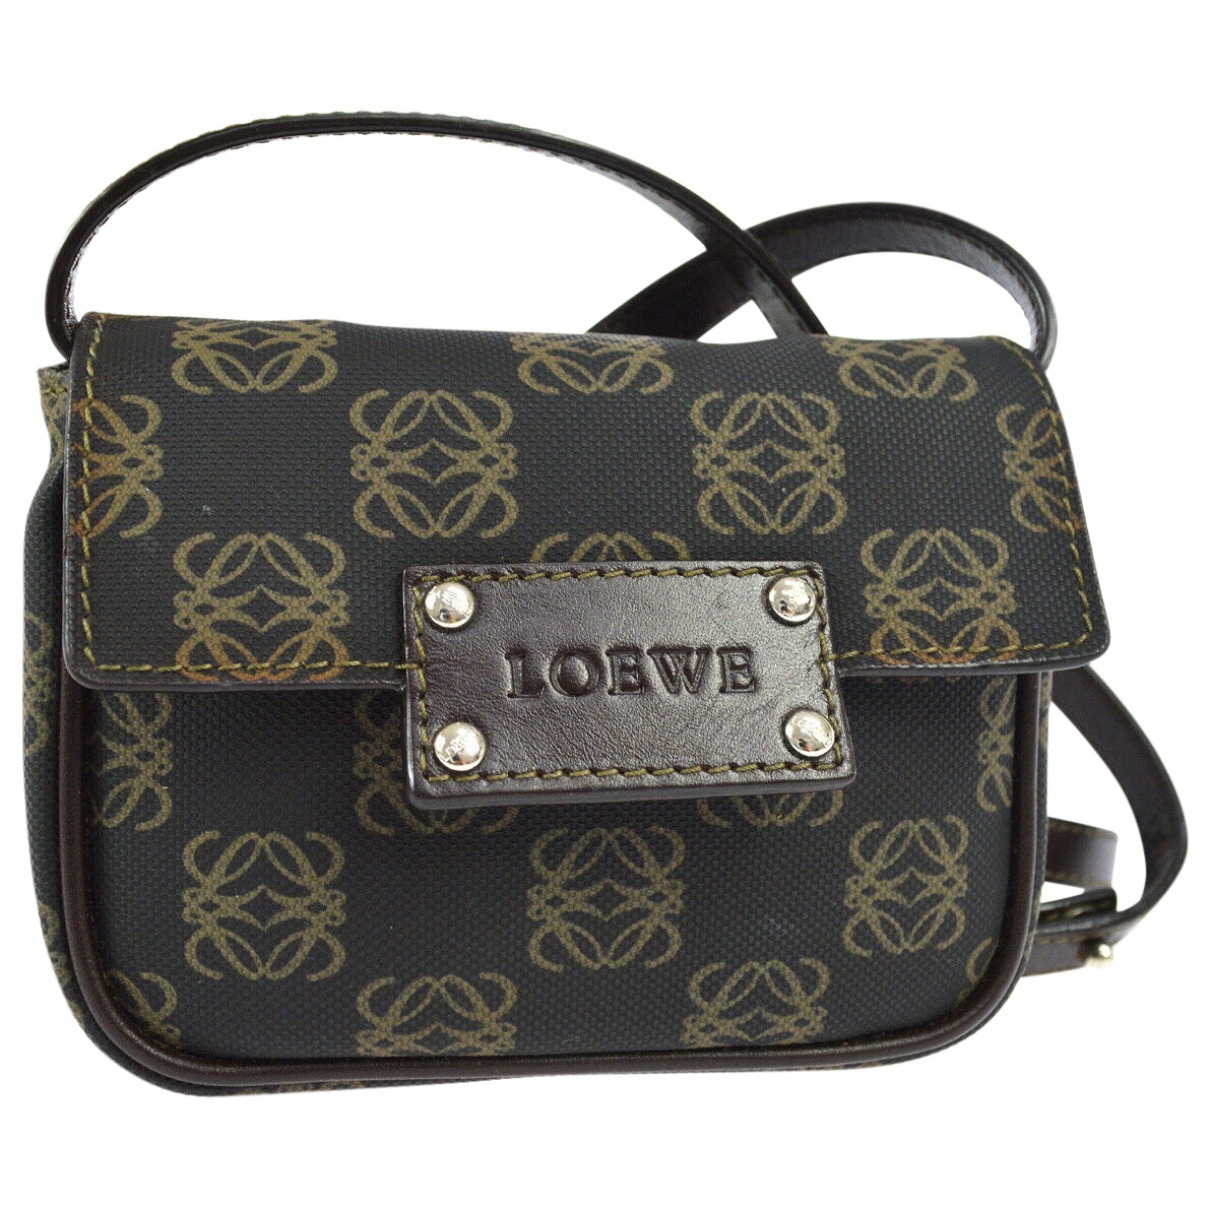 Loewe \N Brown Cloth handbag for Women \N